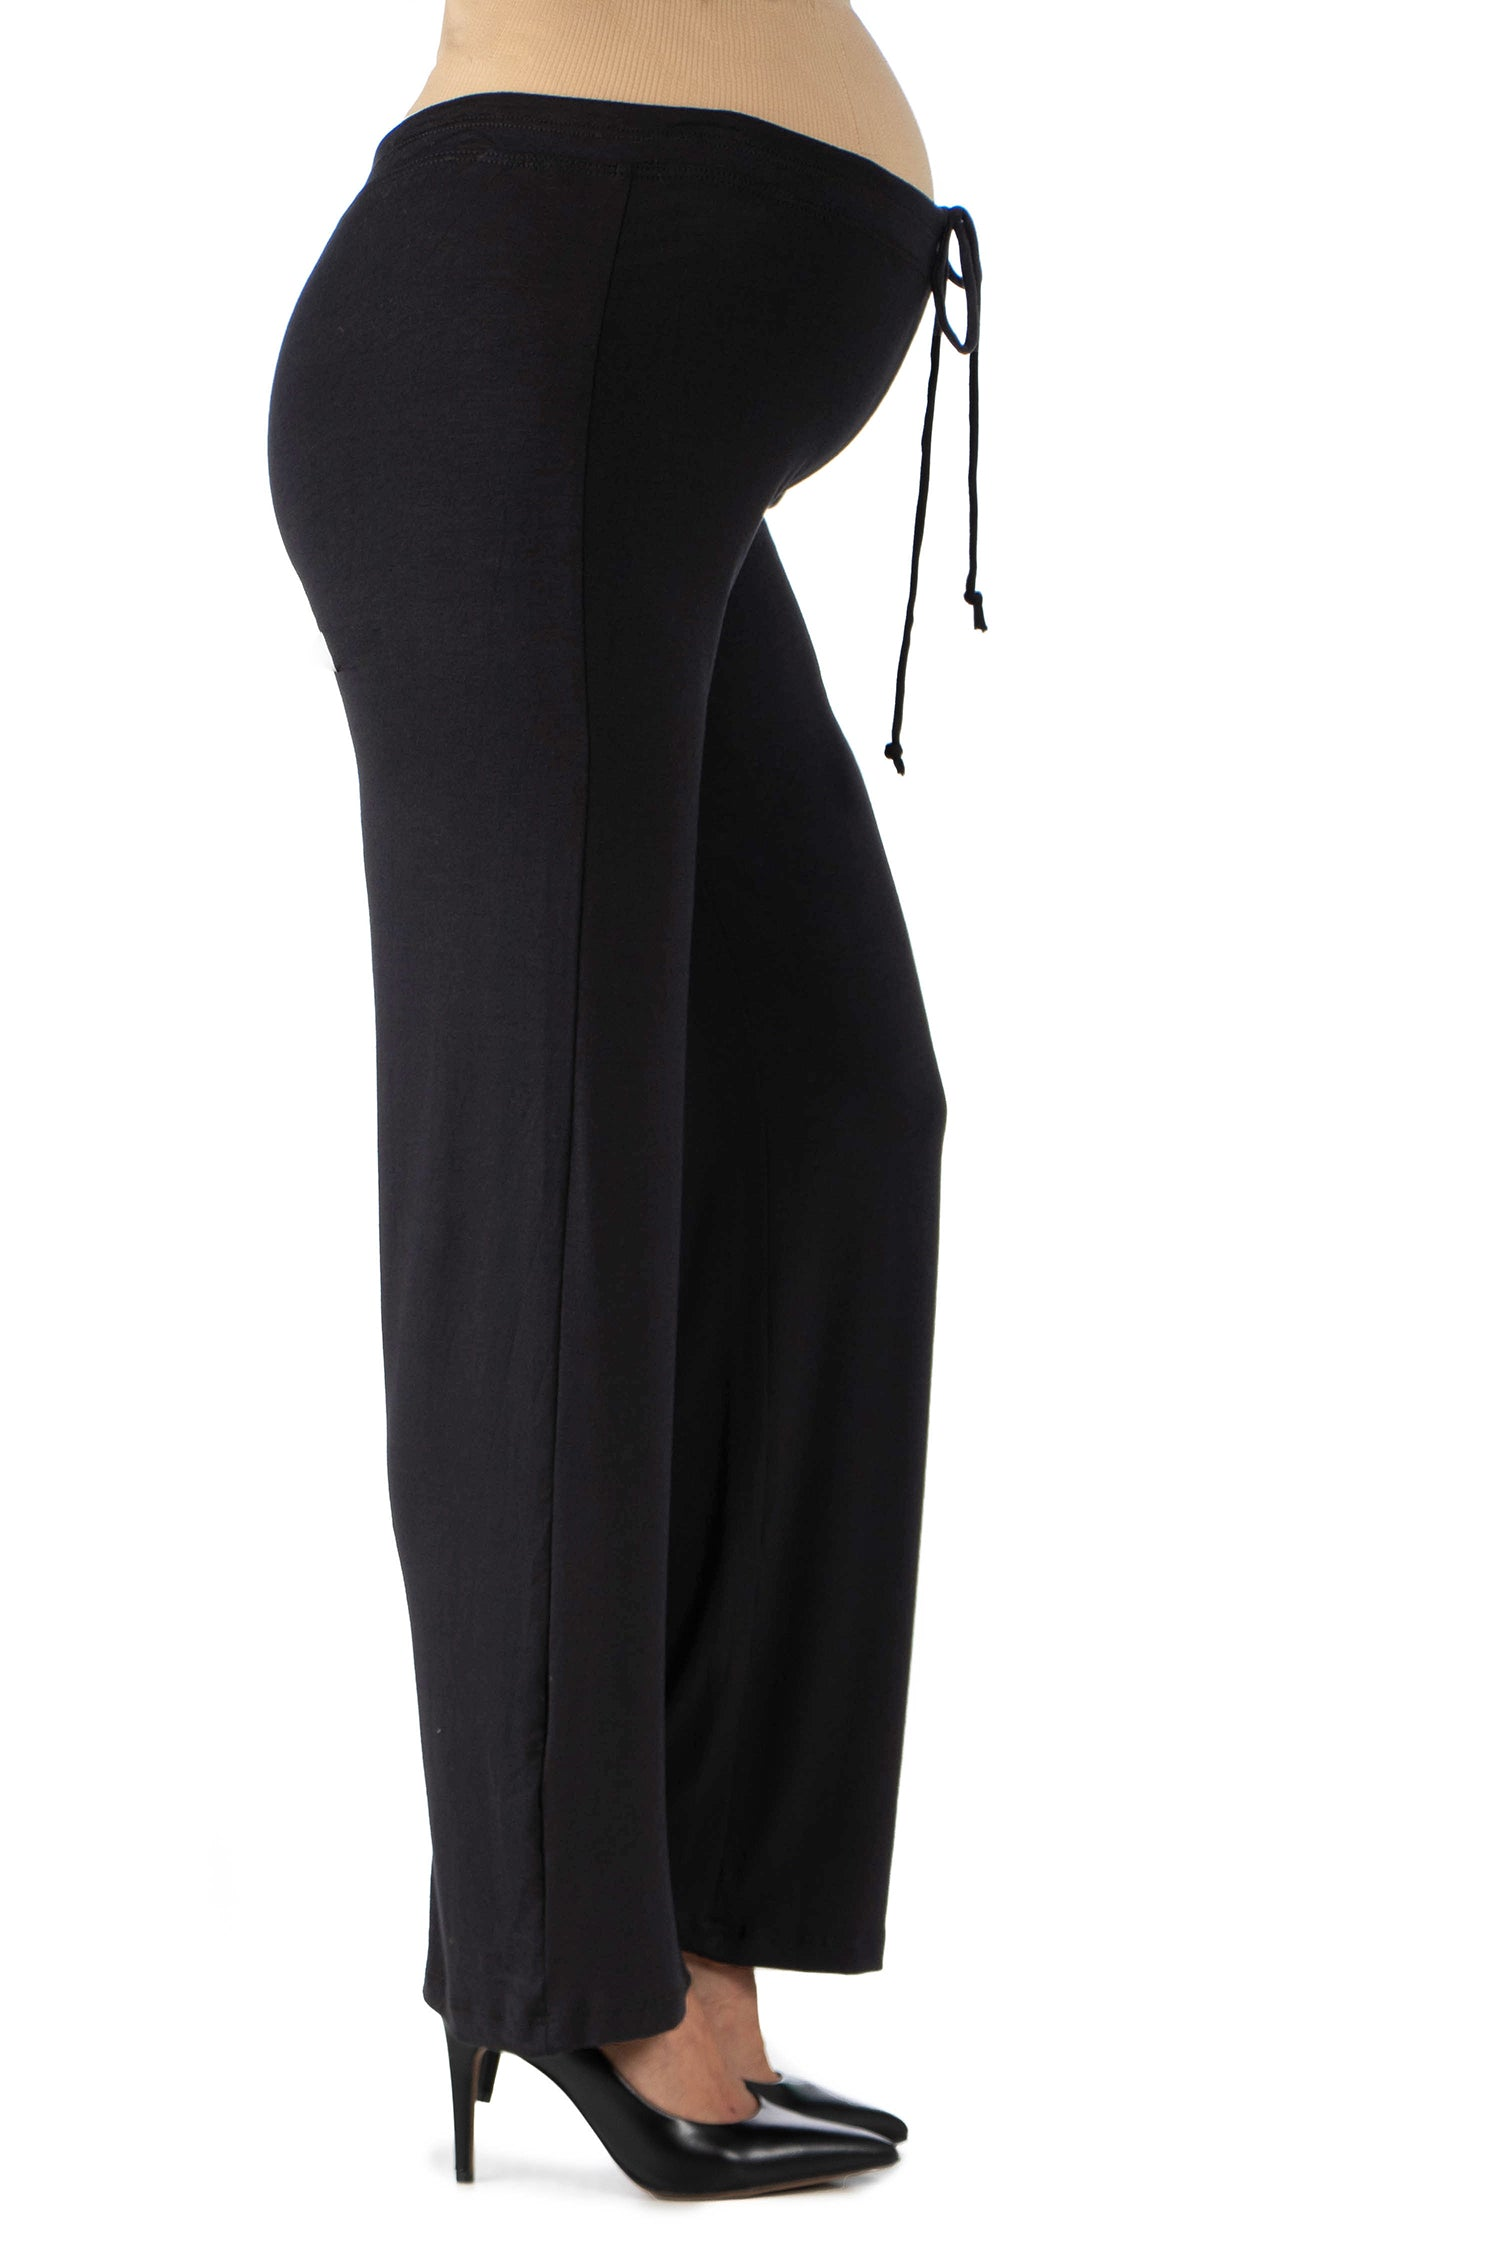 24seven Comfort Apparel Comfortable Stretch Draw String Maternity Pants-PANTS-24Seven Comfort Apparel-BLACK-1X-24/7 Comfort Apparel